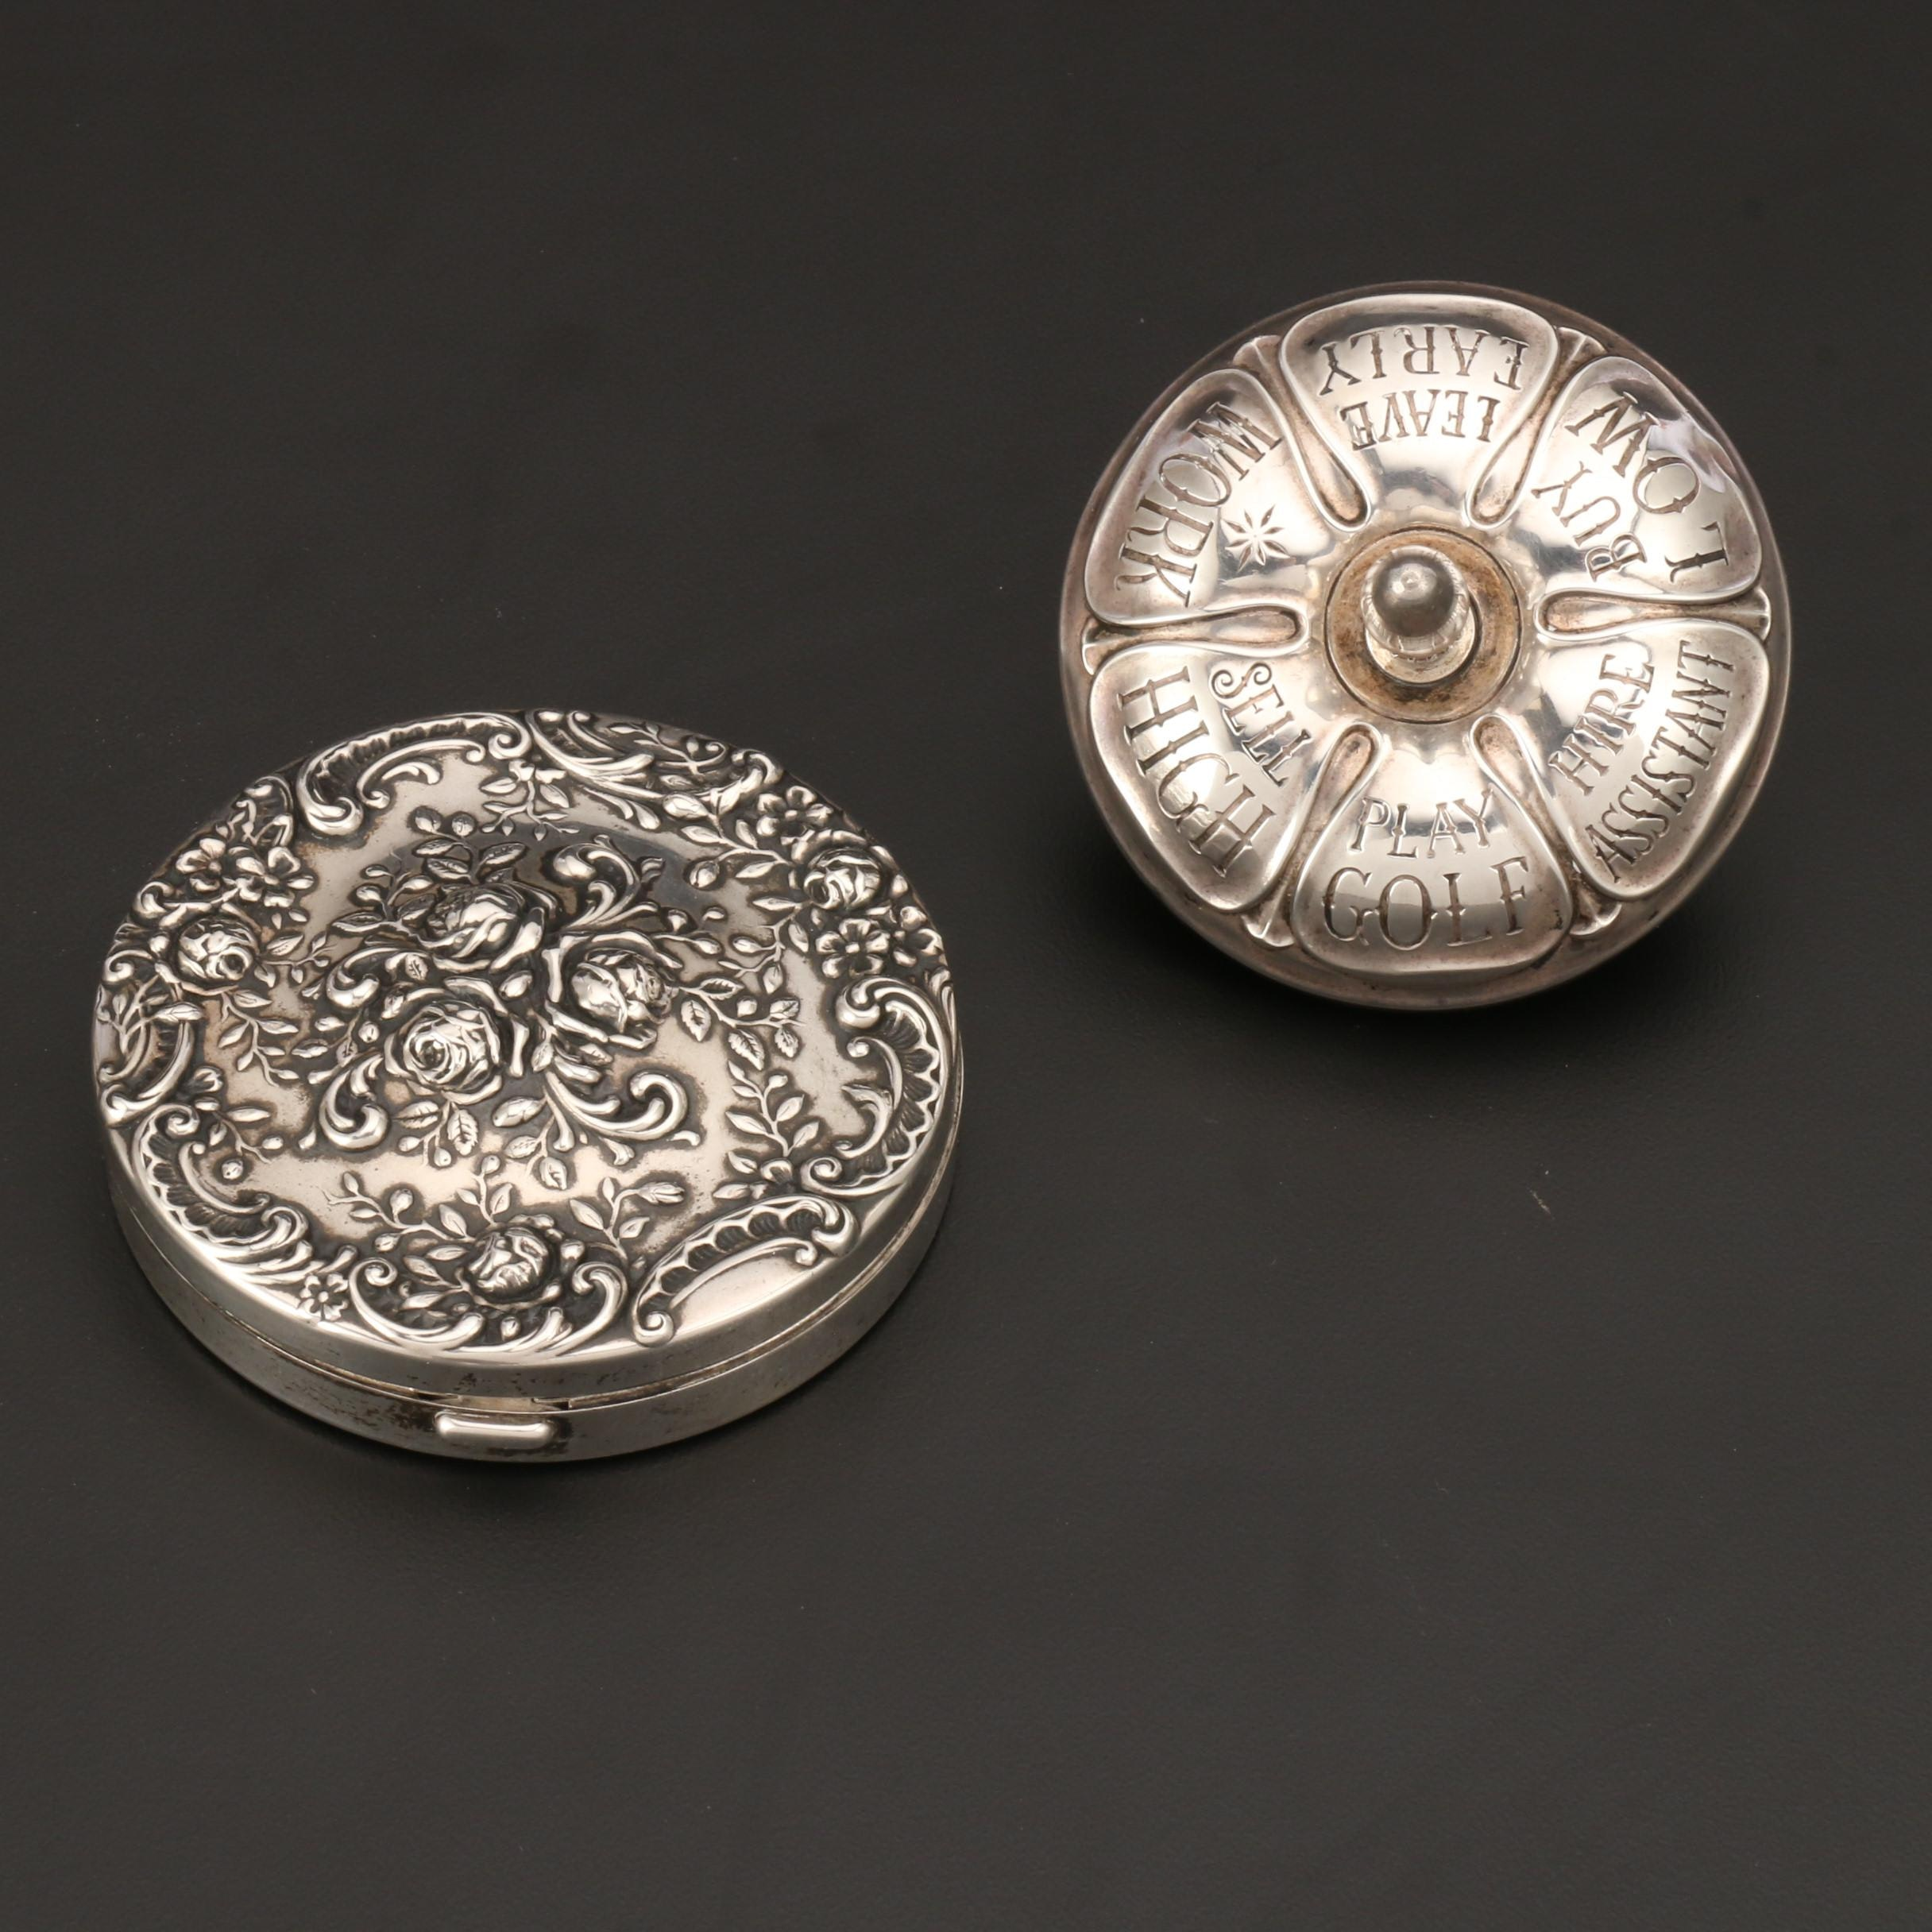 Gorham Sterling Silver Executive Top and Repoussé Compact